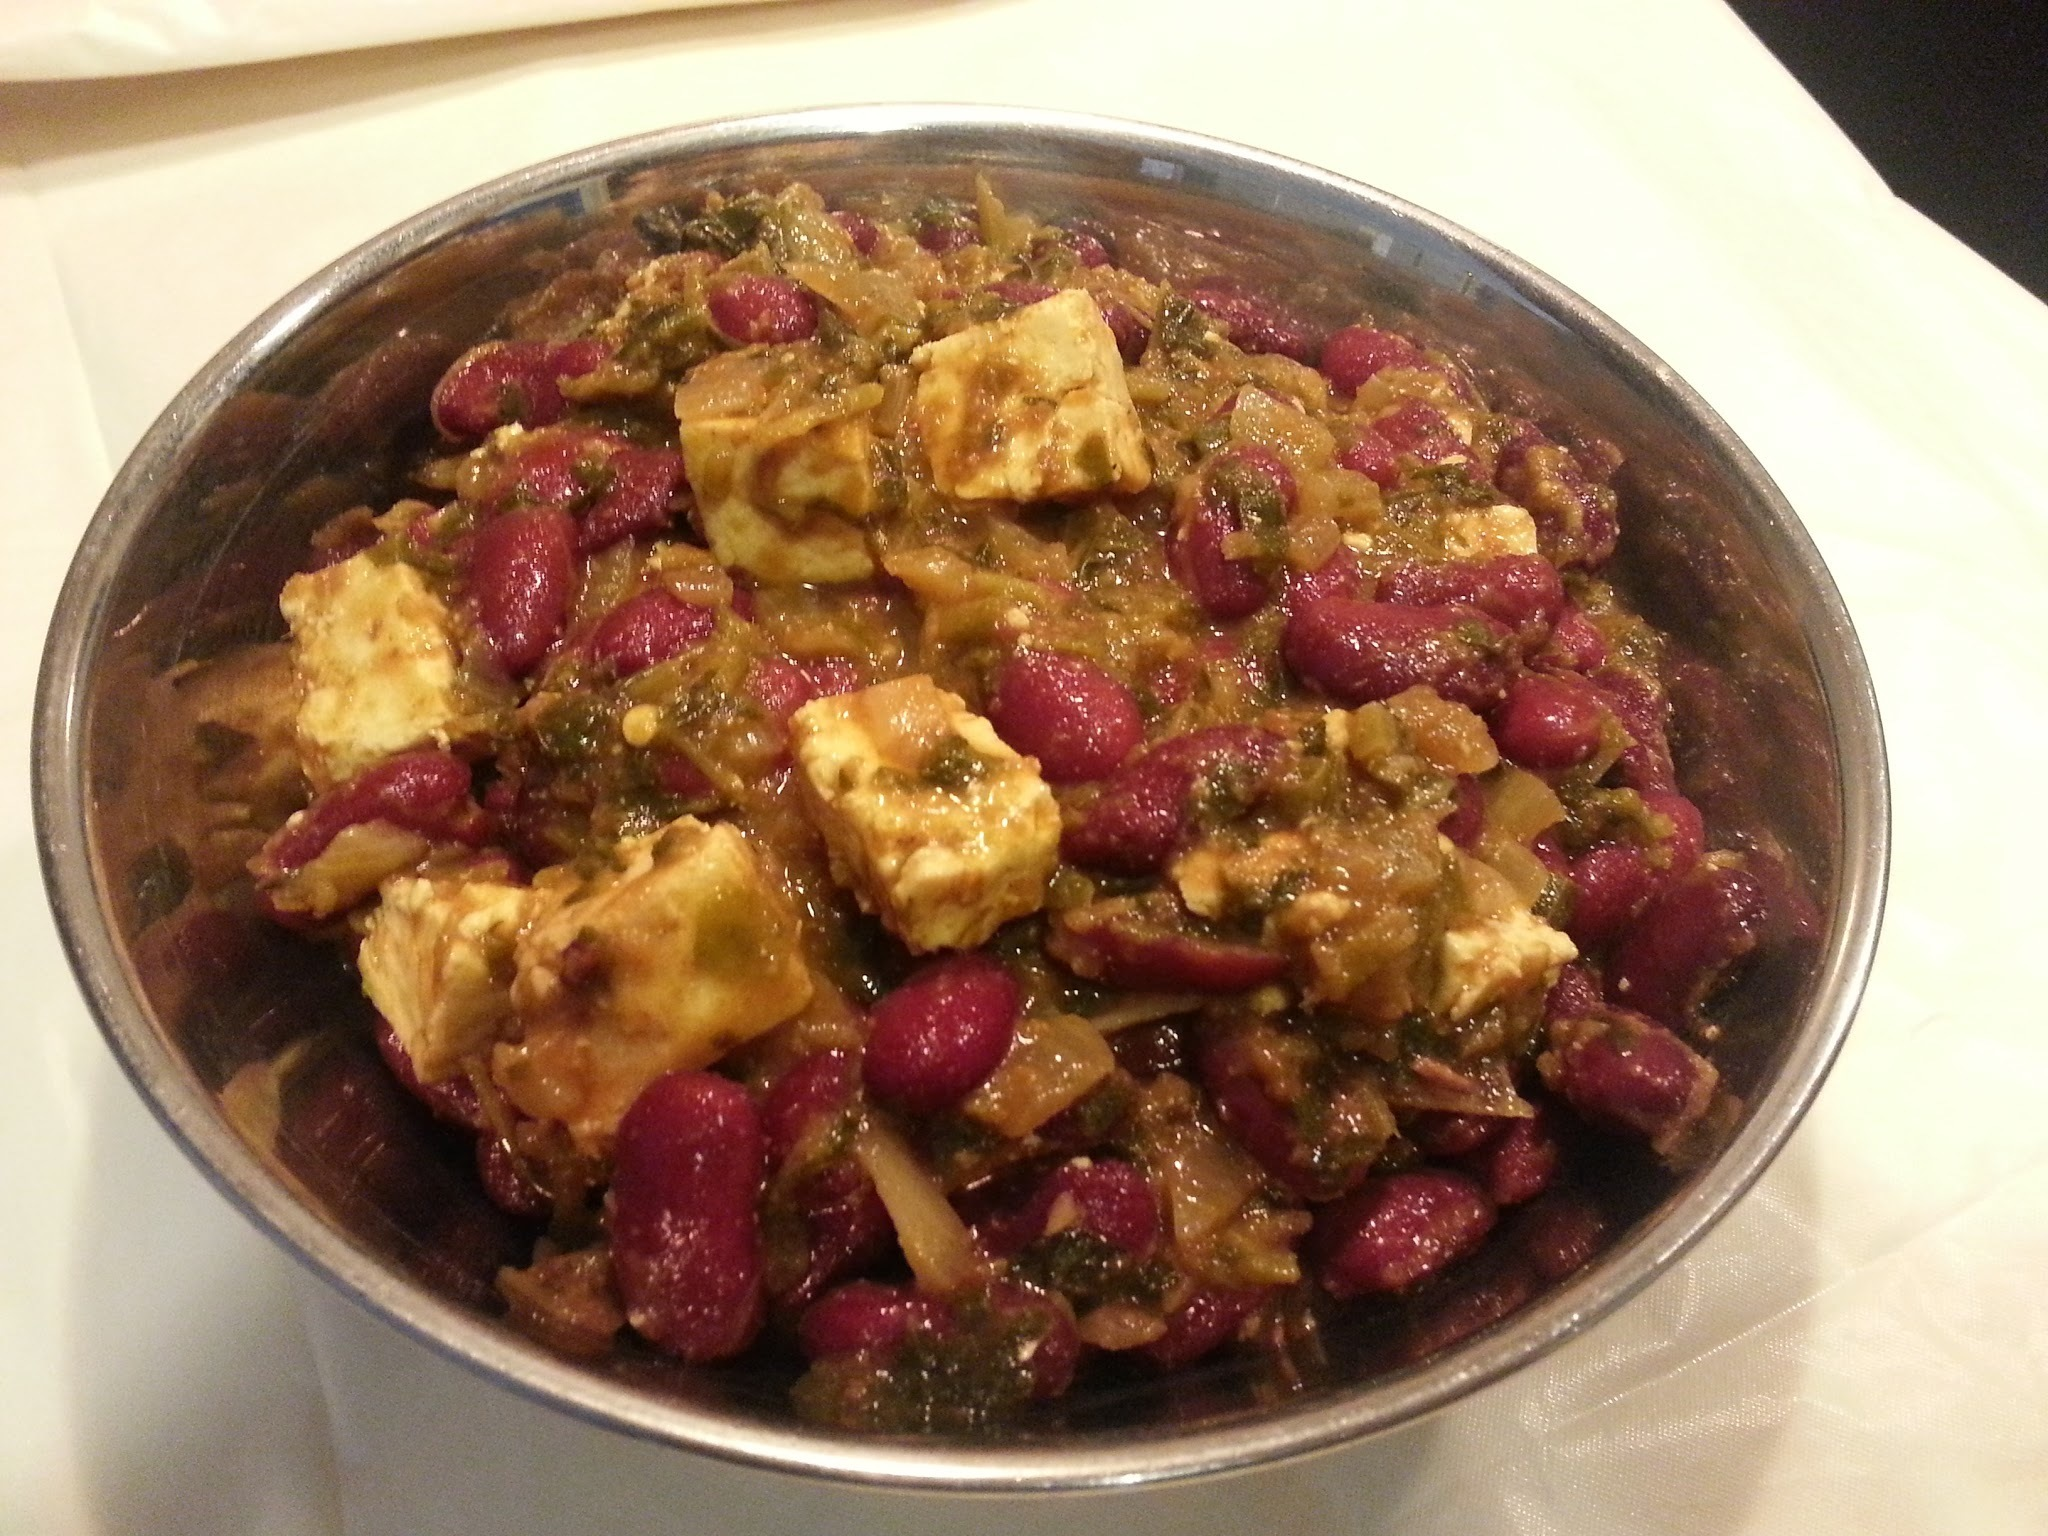 Methi Paneer Rajma curry / Fenugreek Cottage cheese and Dark Red Kidney beans curry